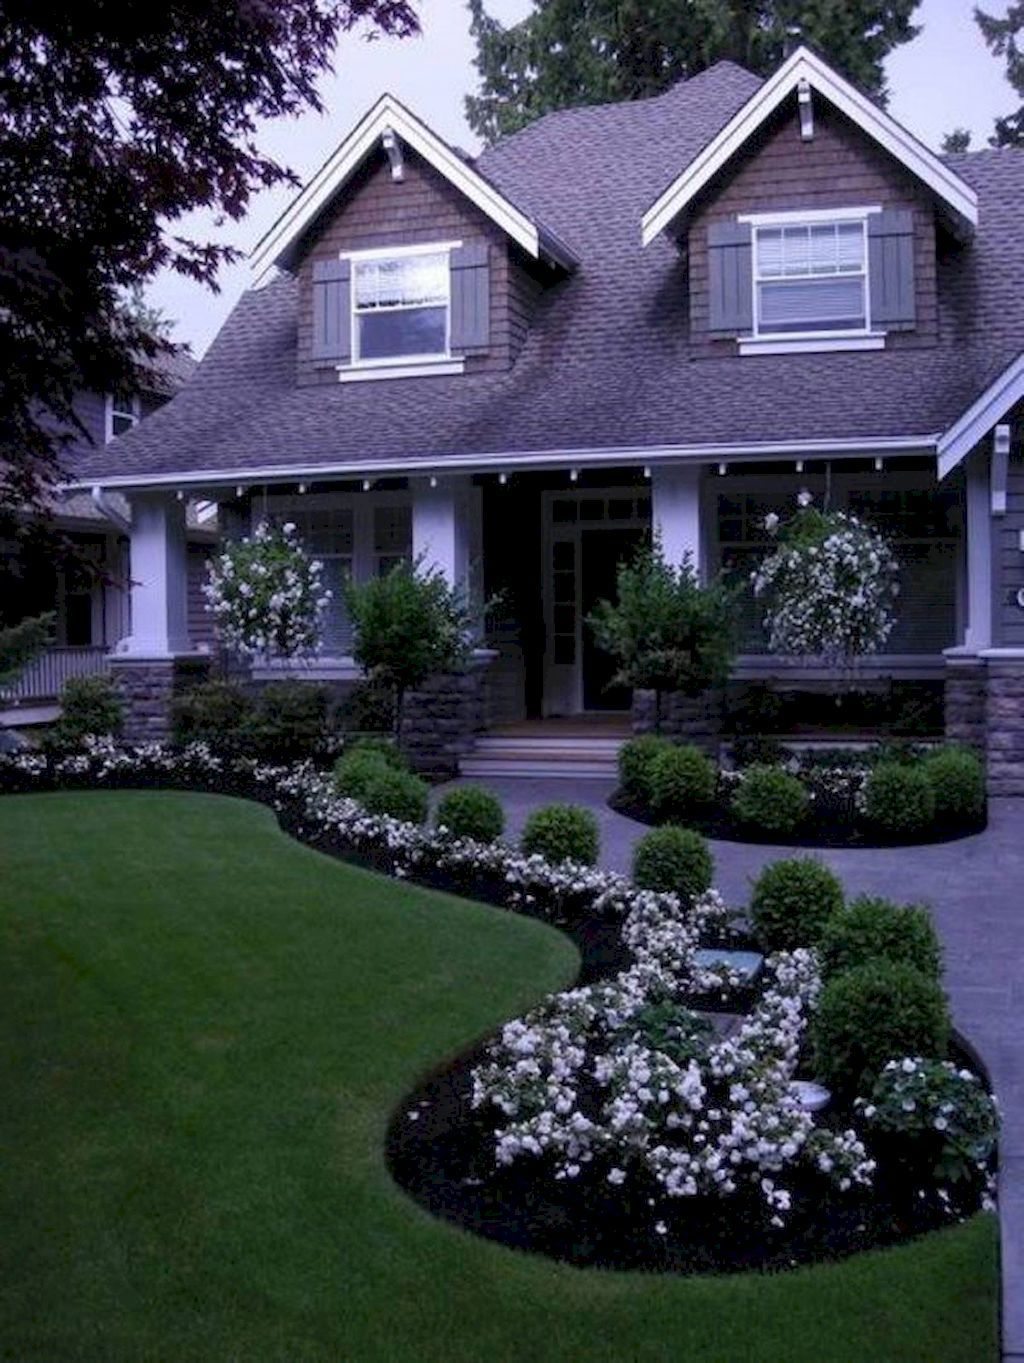 40 beautiful front yard landscaping ideas yard for Front yard garden design ideas